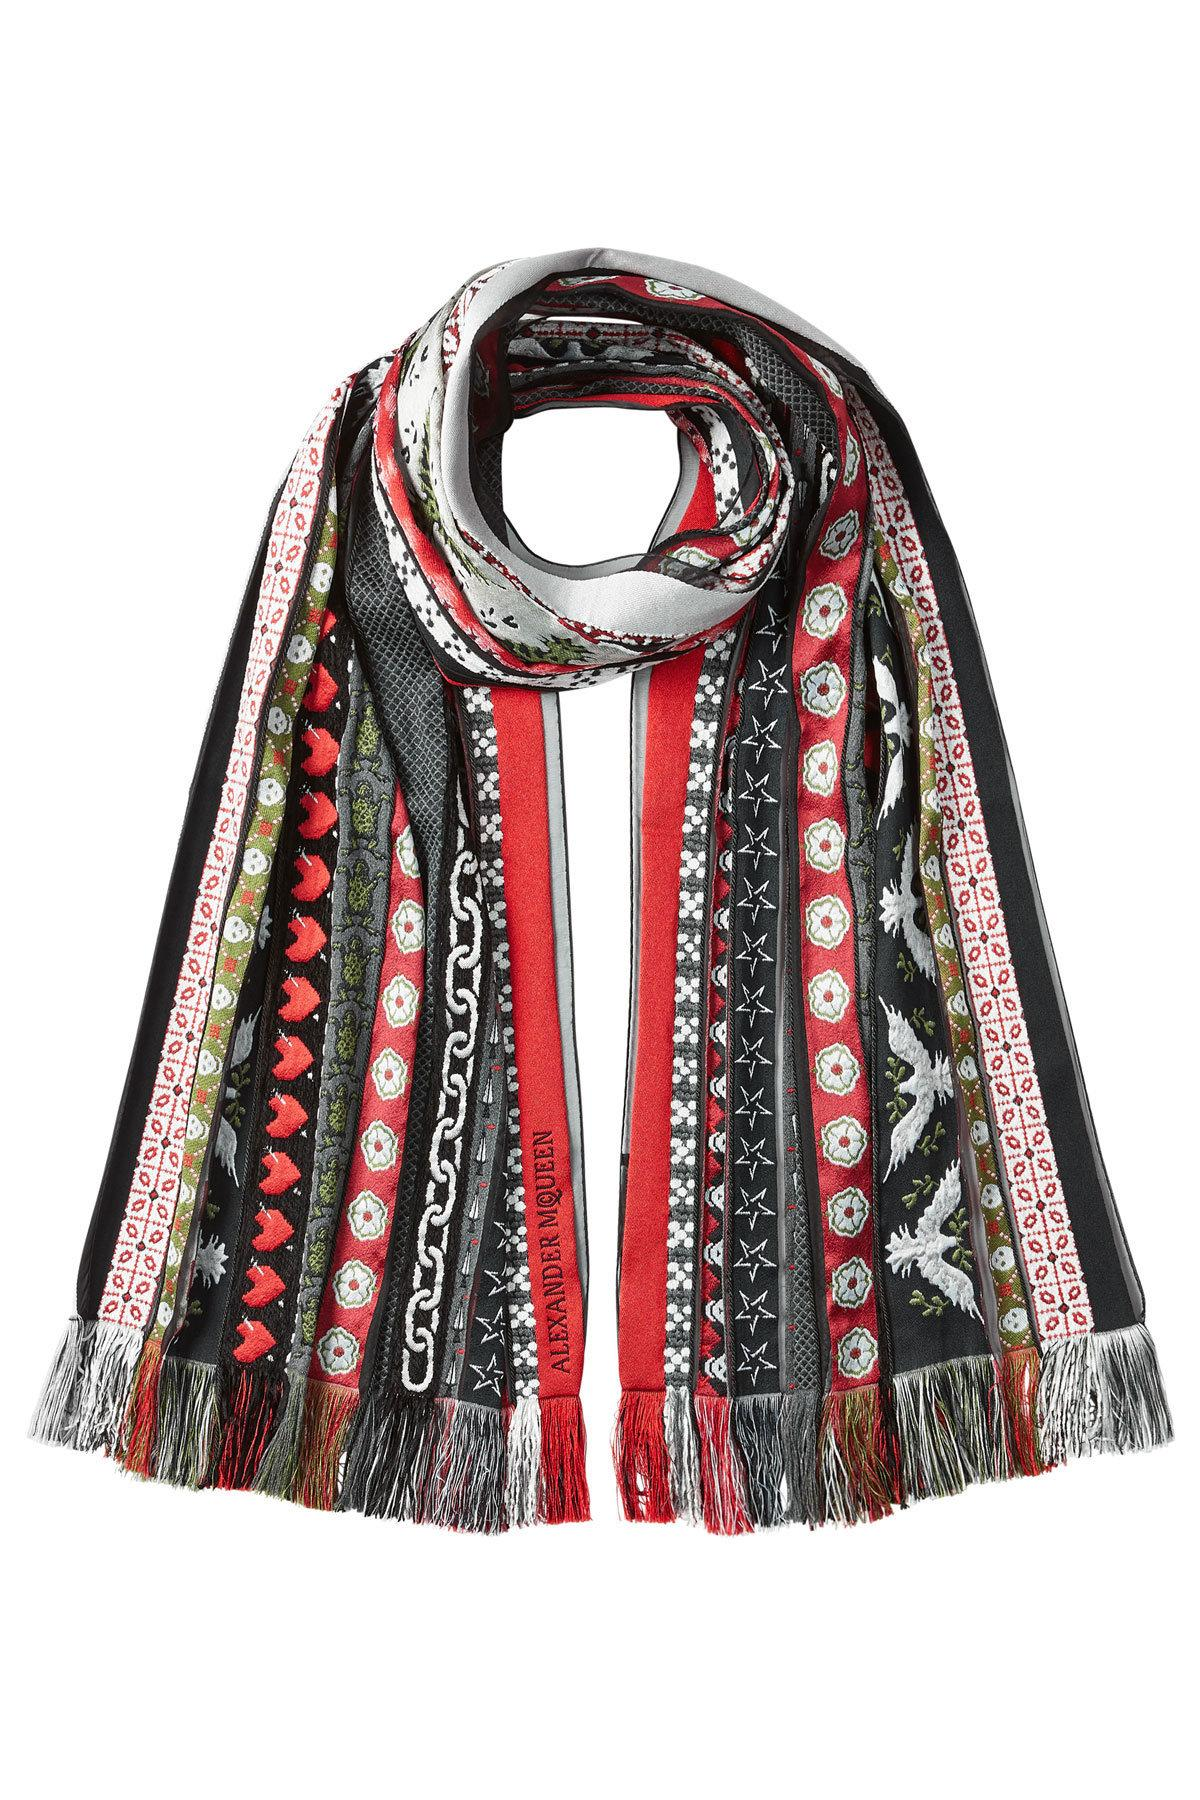 Alexander Mcqueen Woven Scarf With Wool And Silk In Multicolored